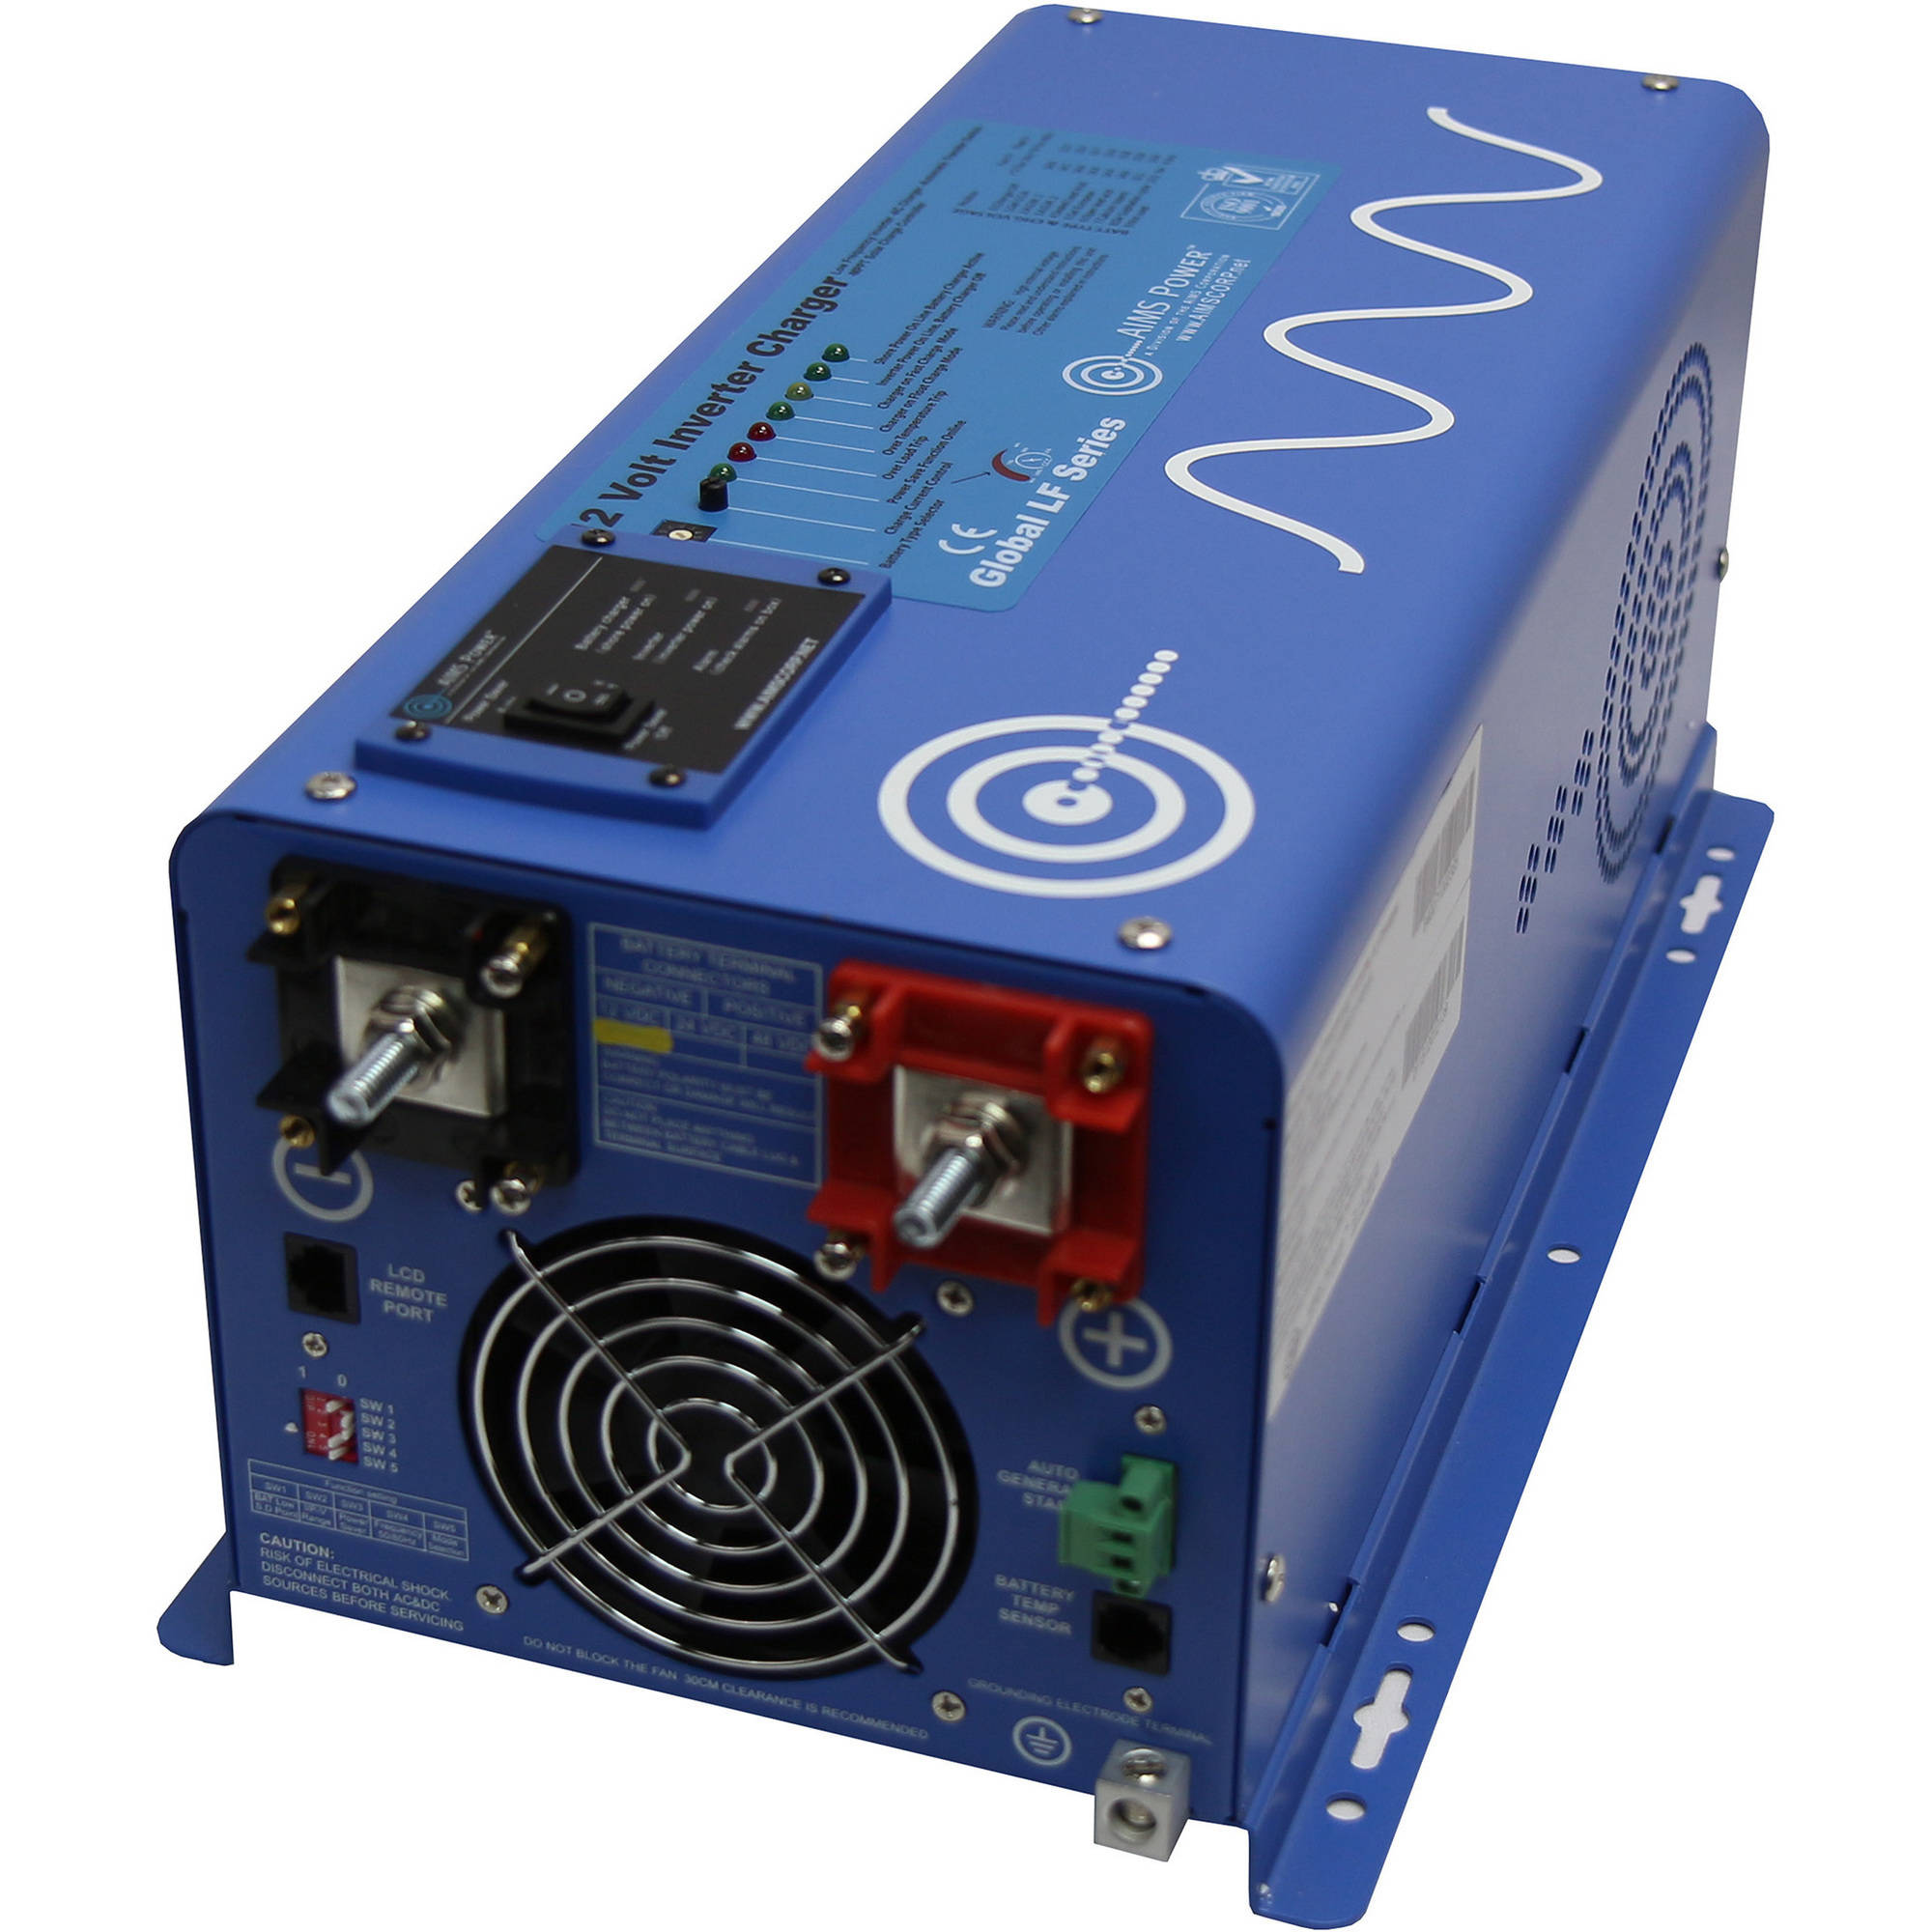 AIMS Power 3000W 12 Volt Pure Sine Inverter Charger